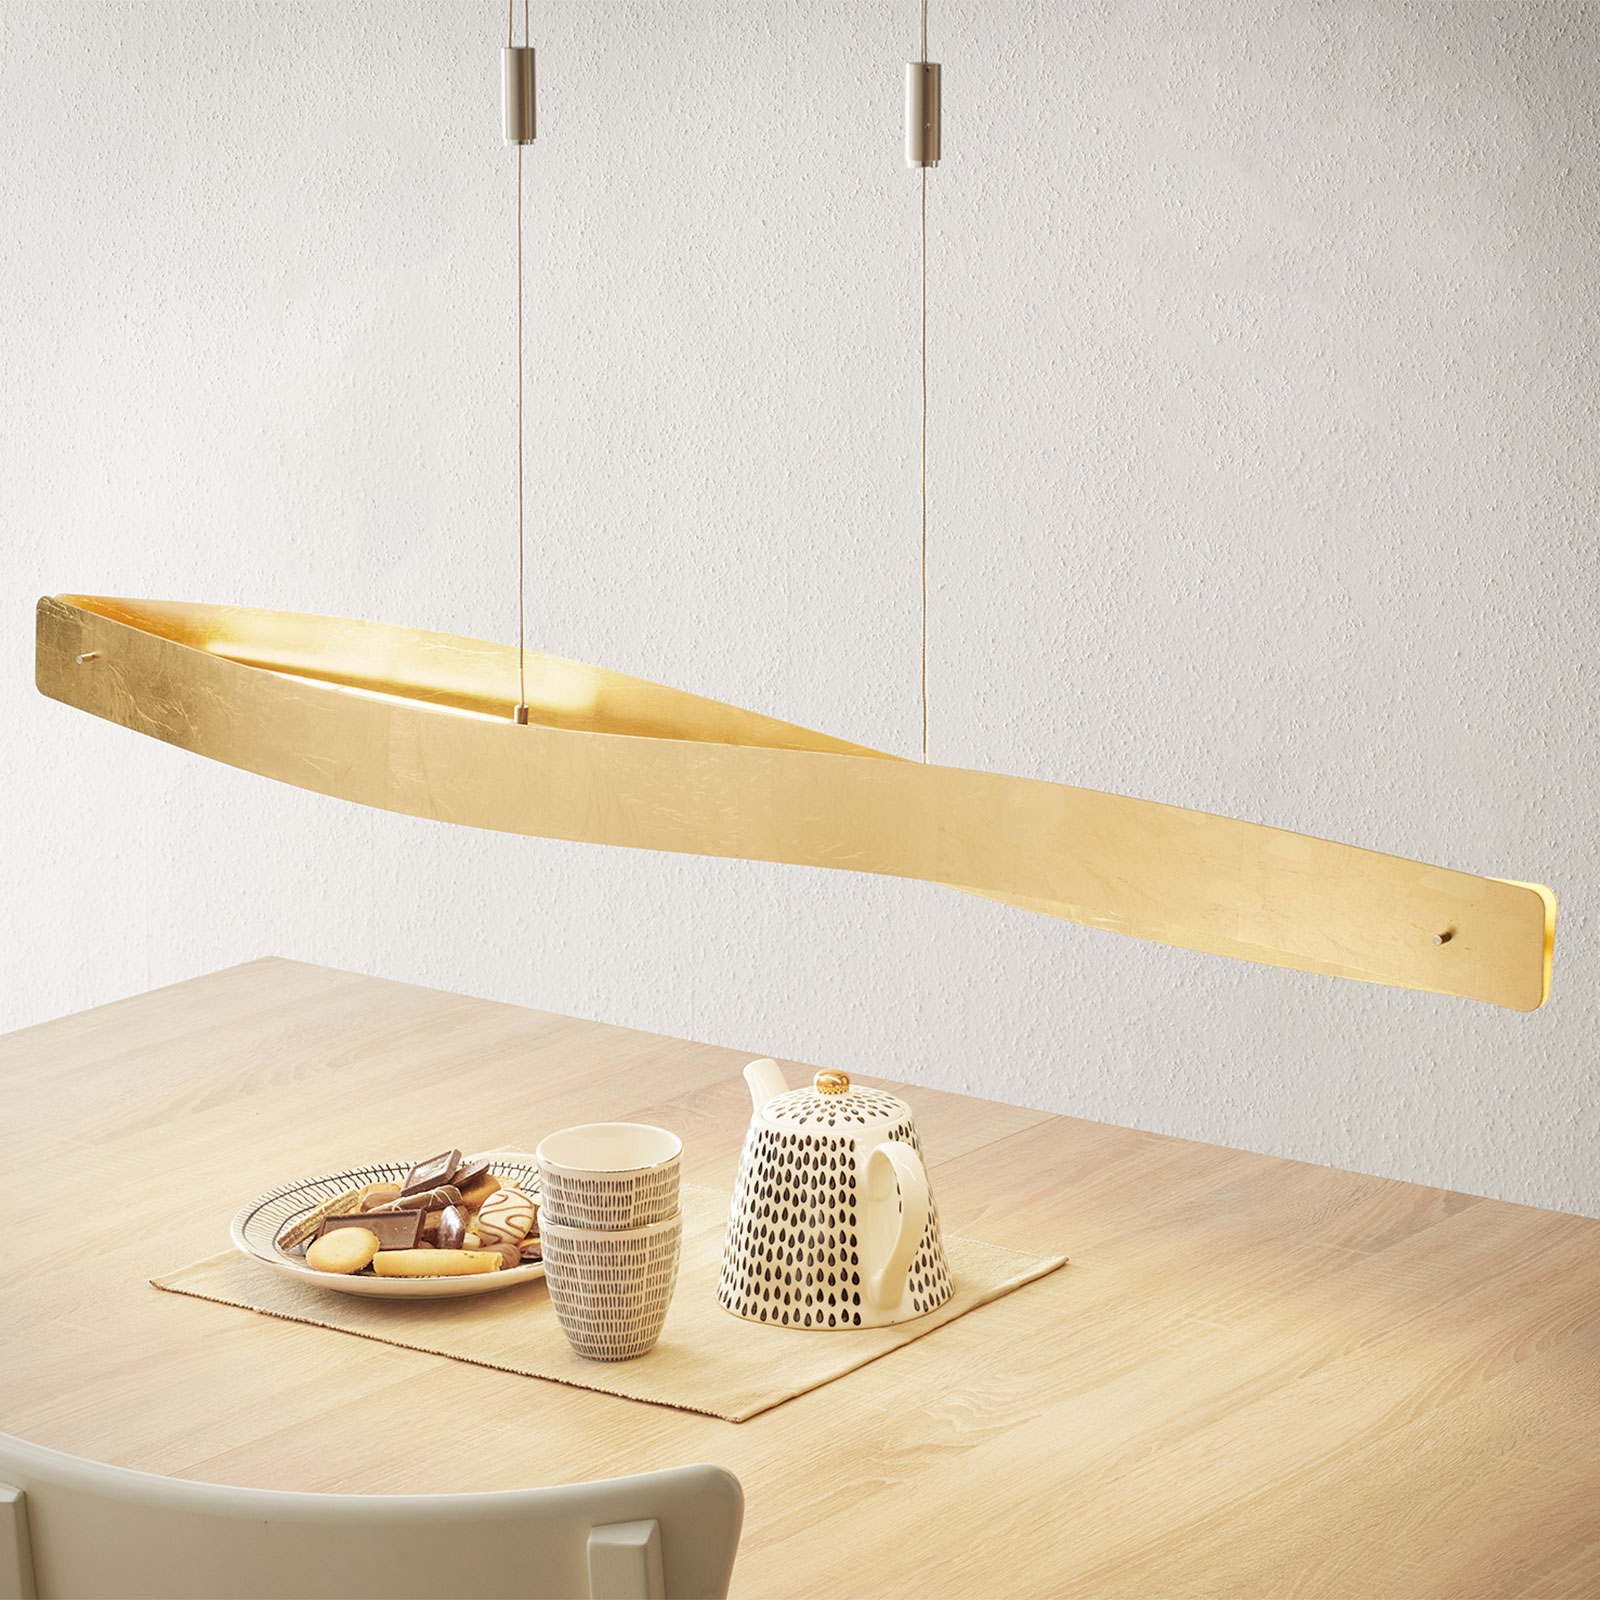 Gebogen led hanglamp Lian in goudlook